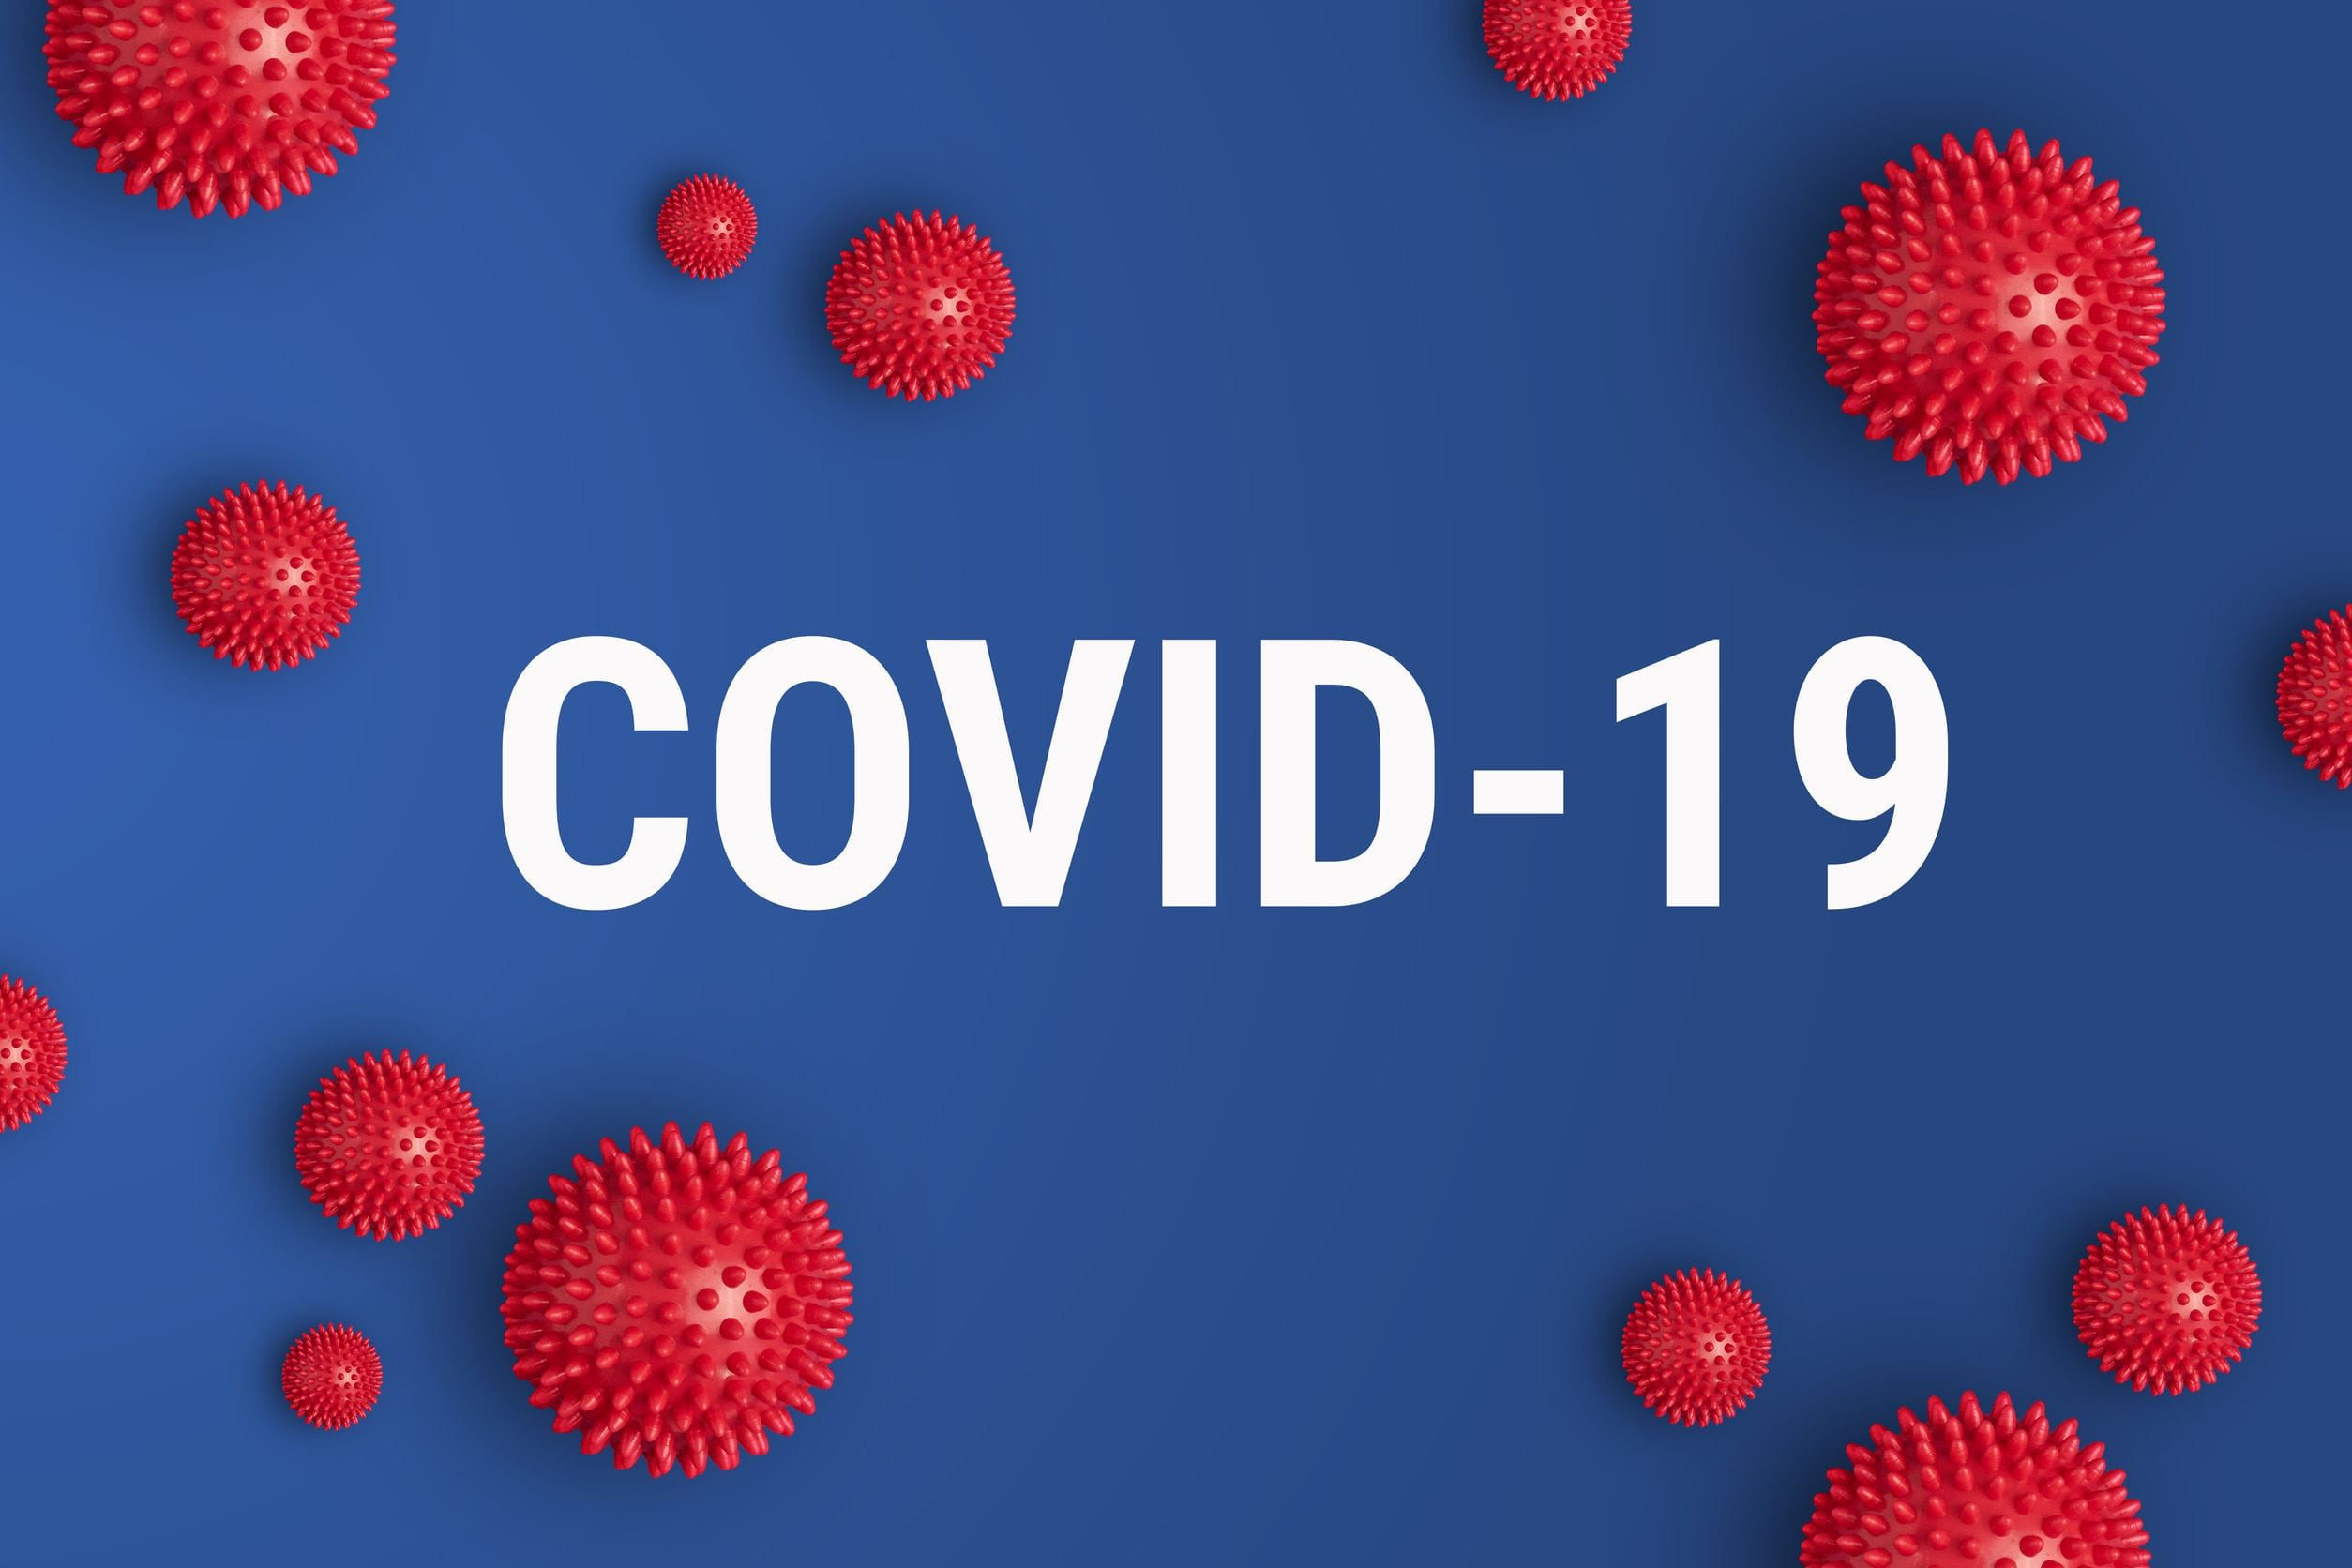 COVID-19 Pandemic Shines Spotlight On Need For Interoperability